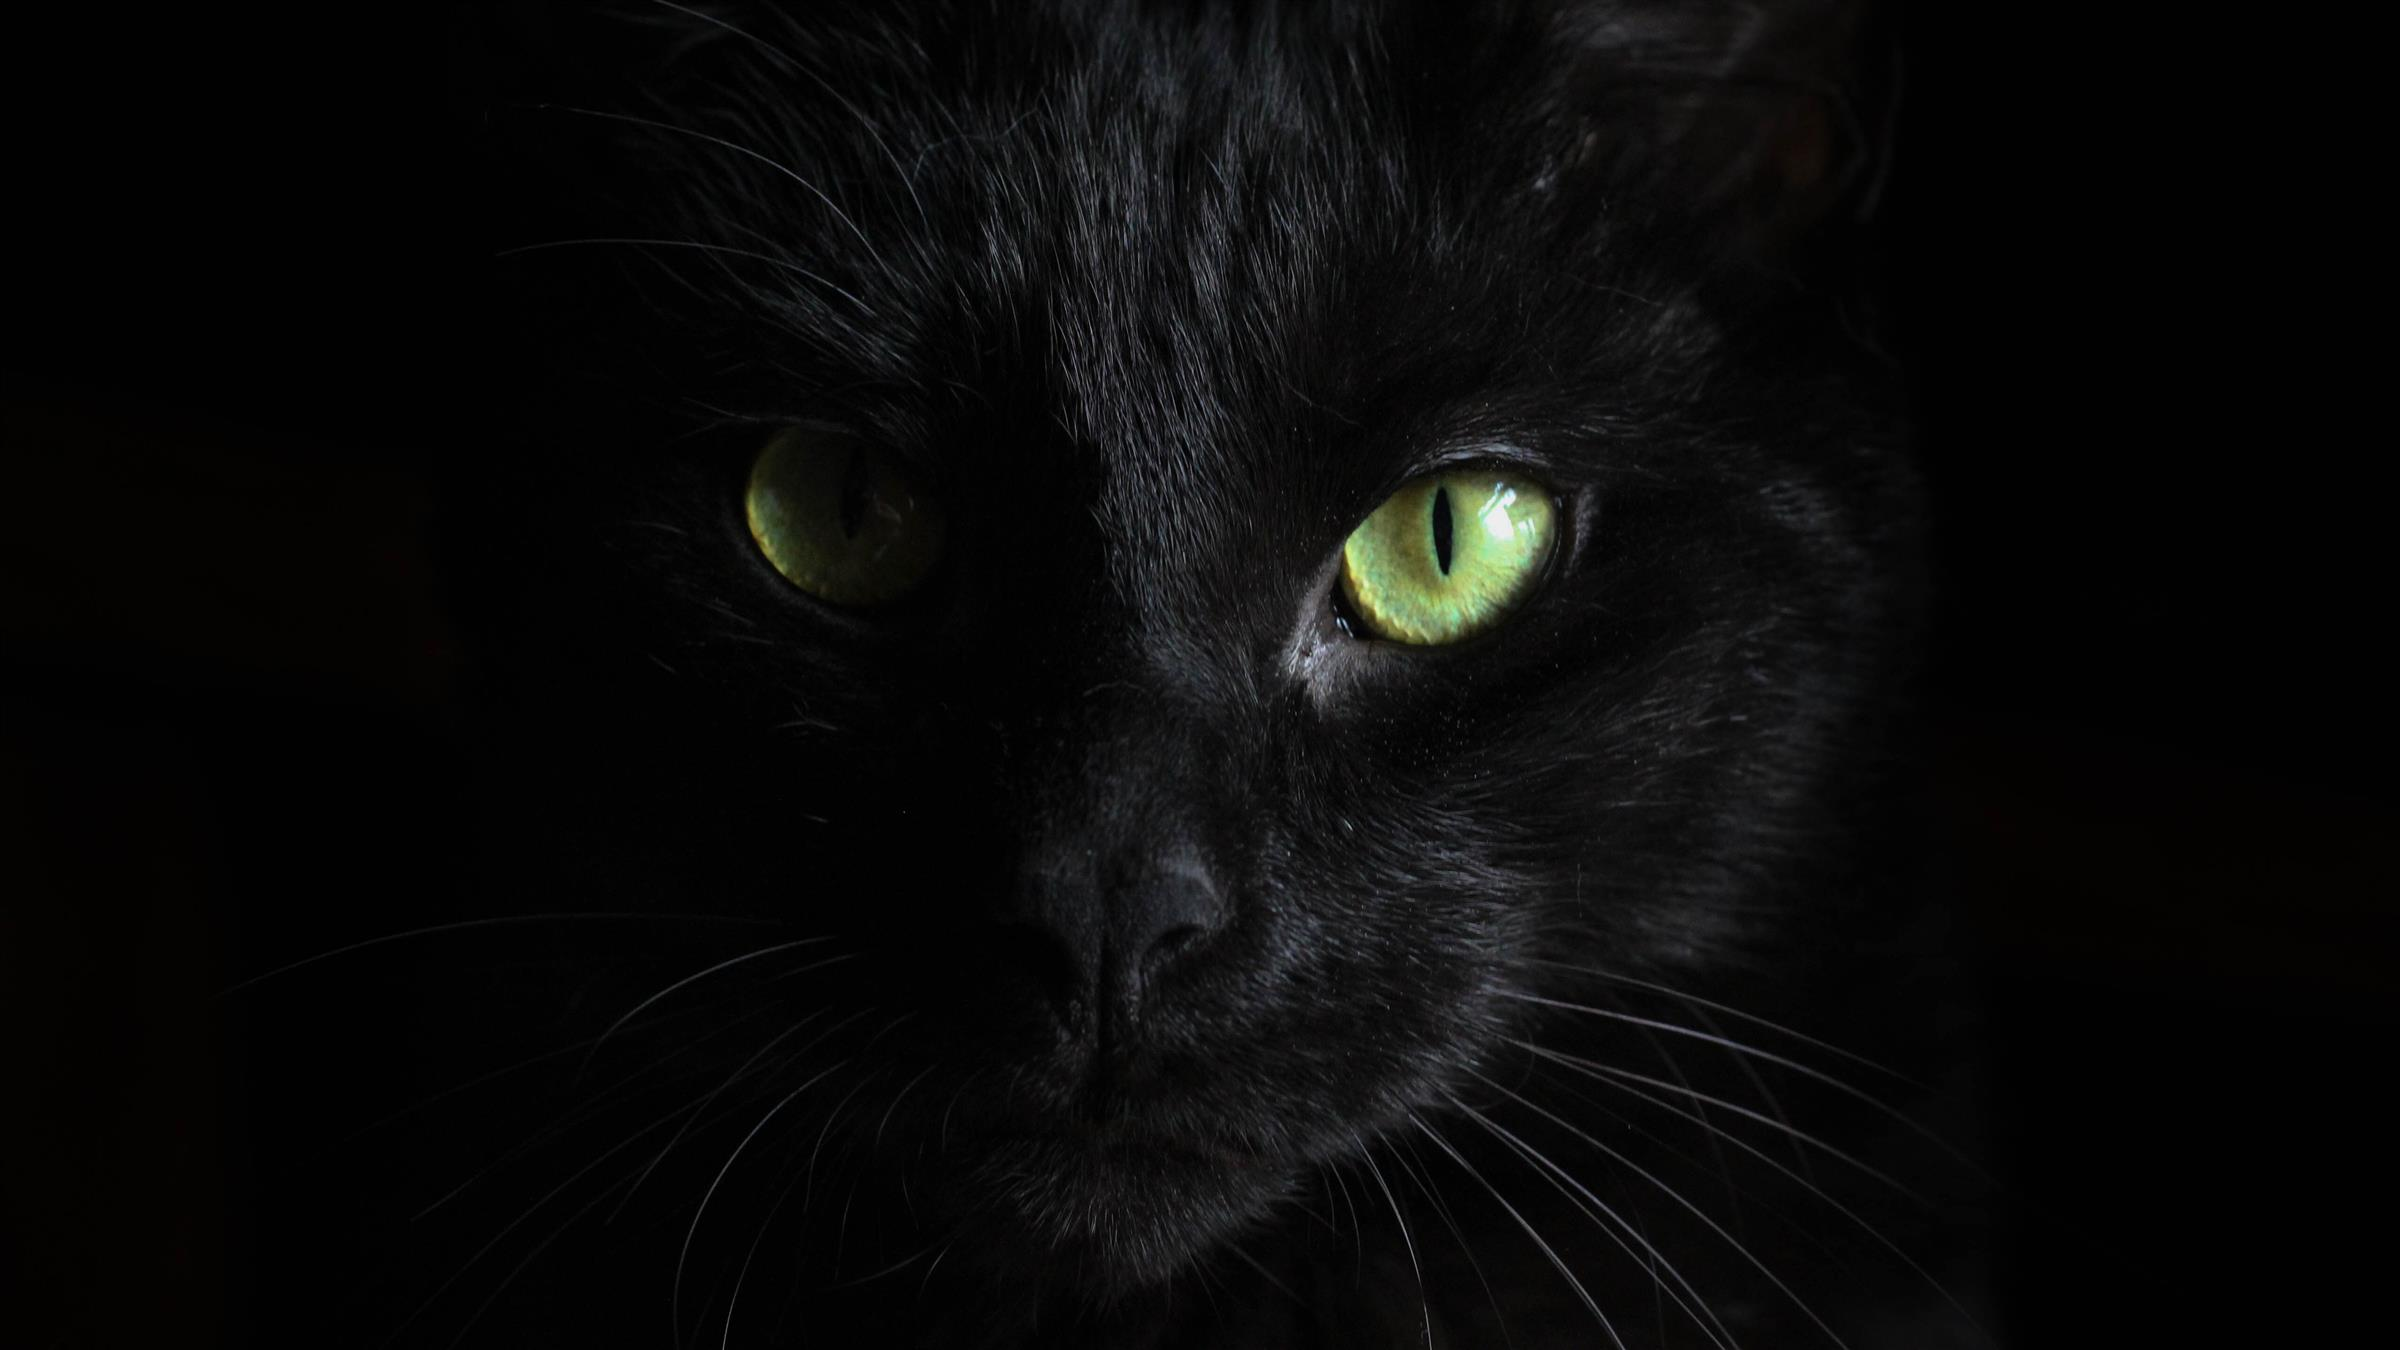 2400x1350 Yellow Eye of Black Cat Dangerous 5K Photo